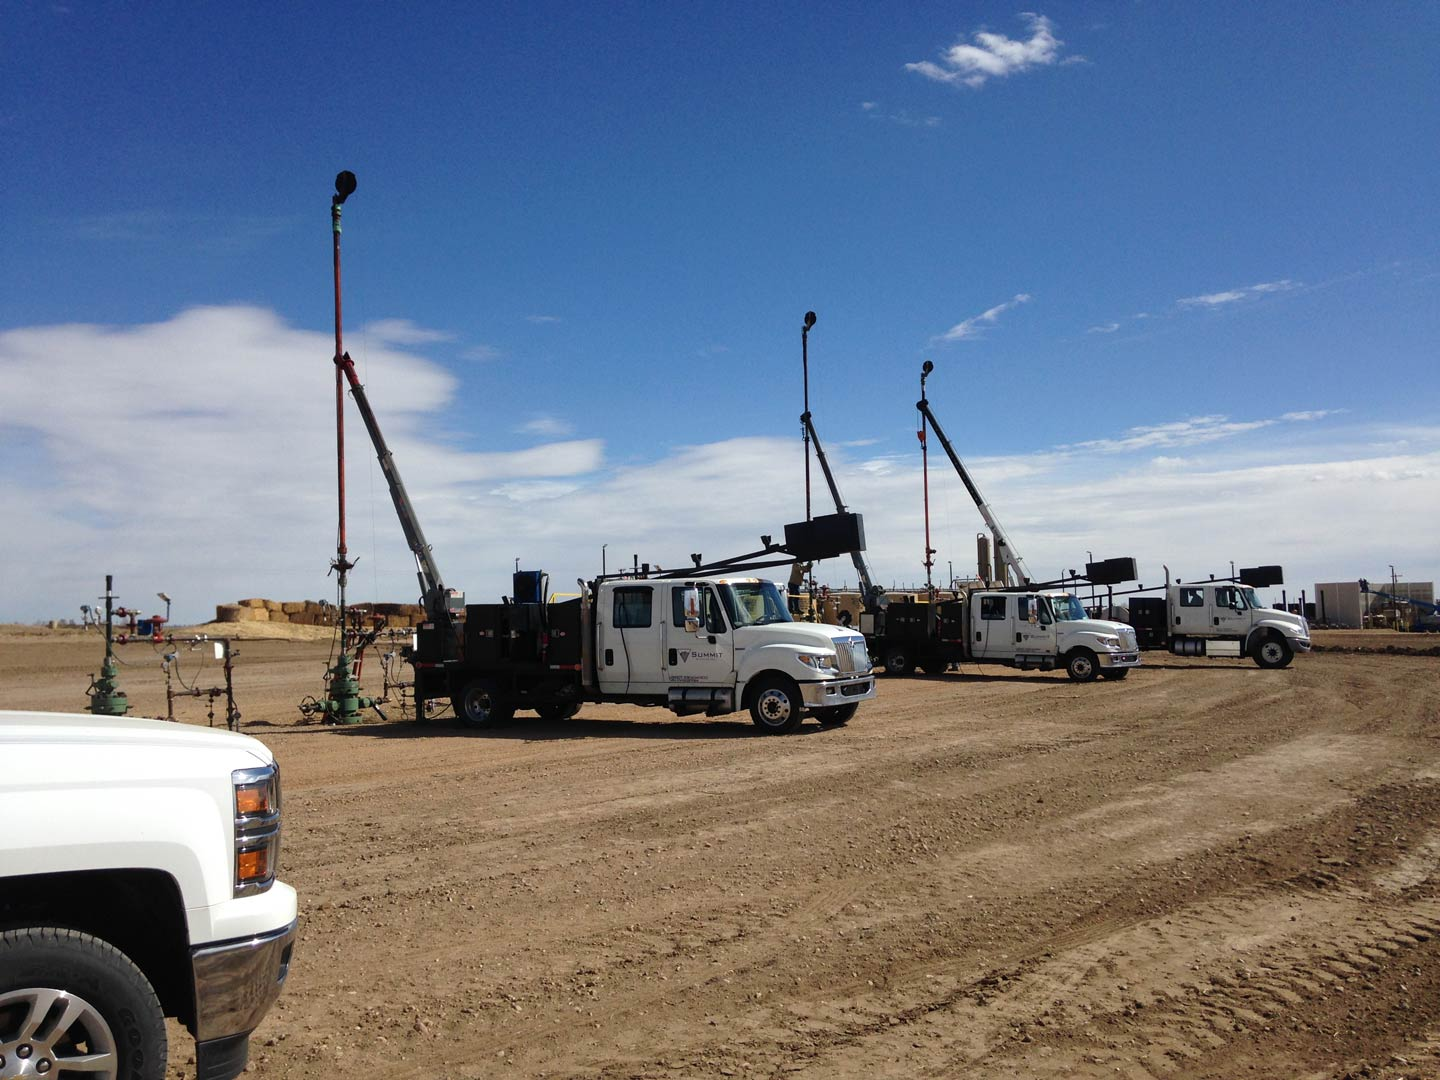 Trucks used for well services in Greeley, CO